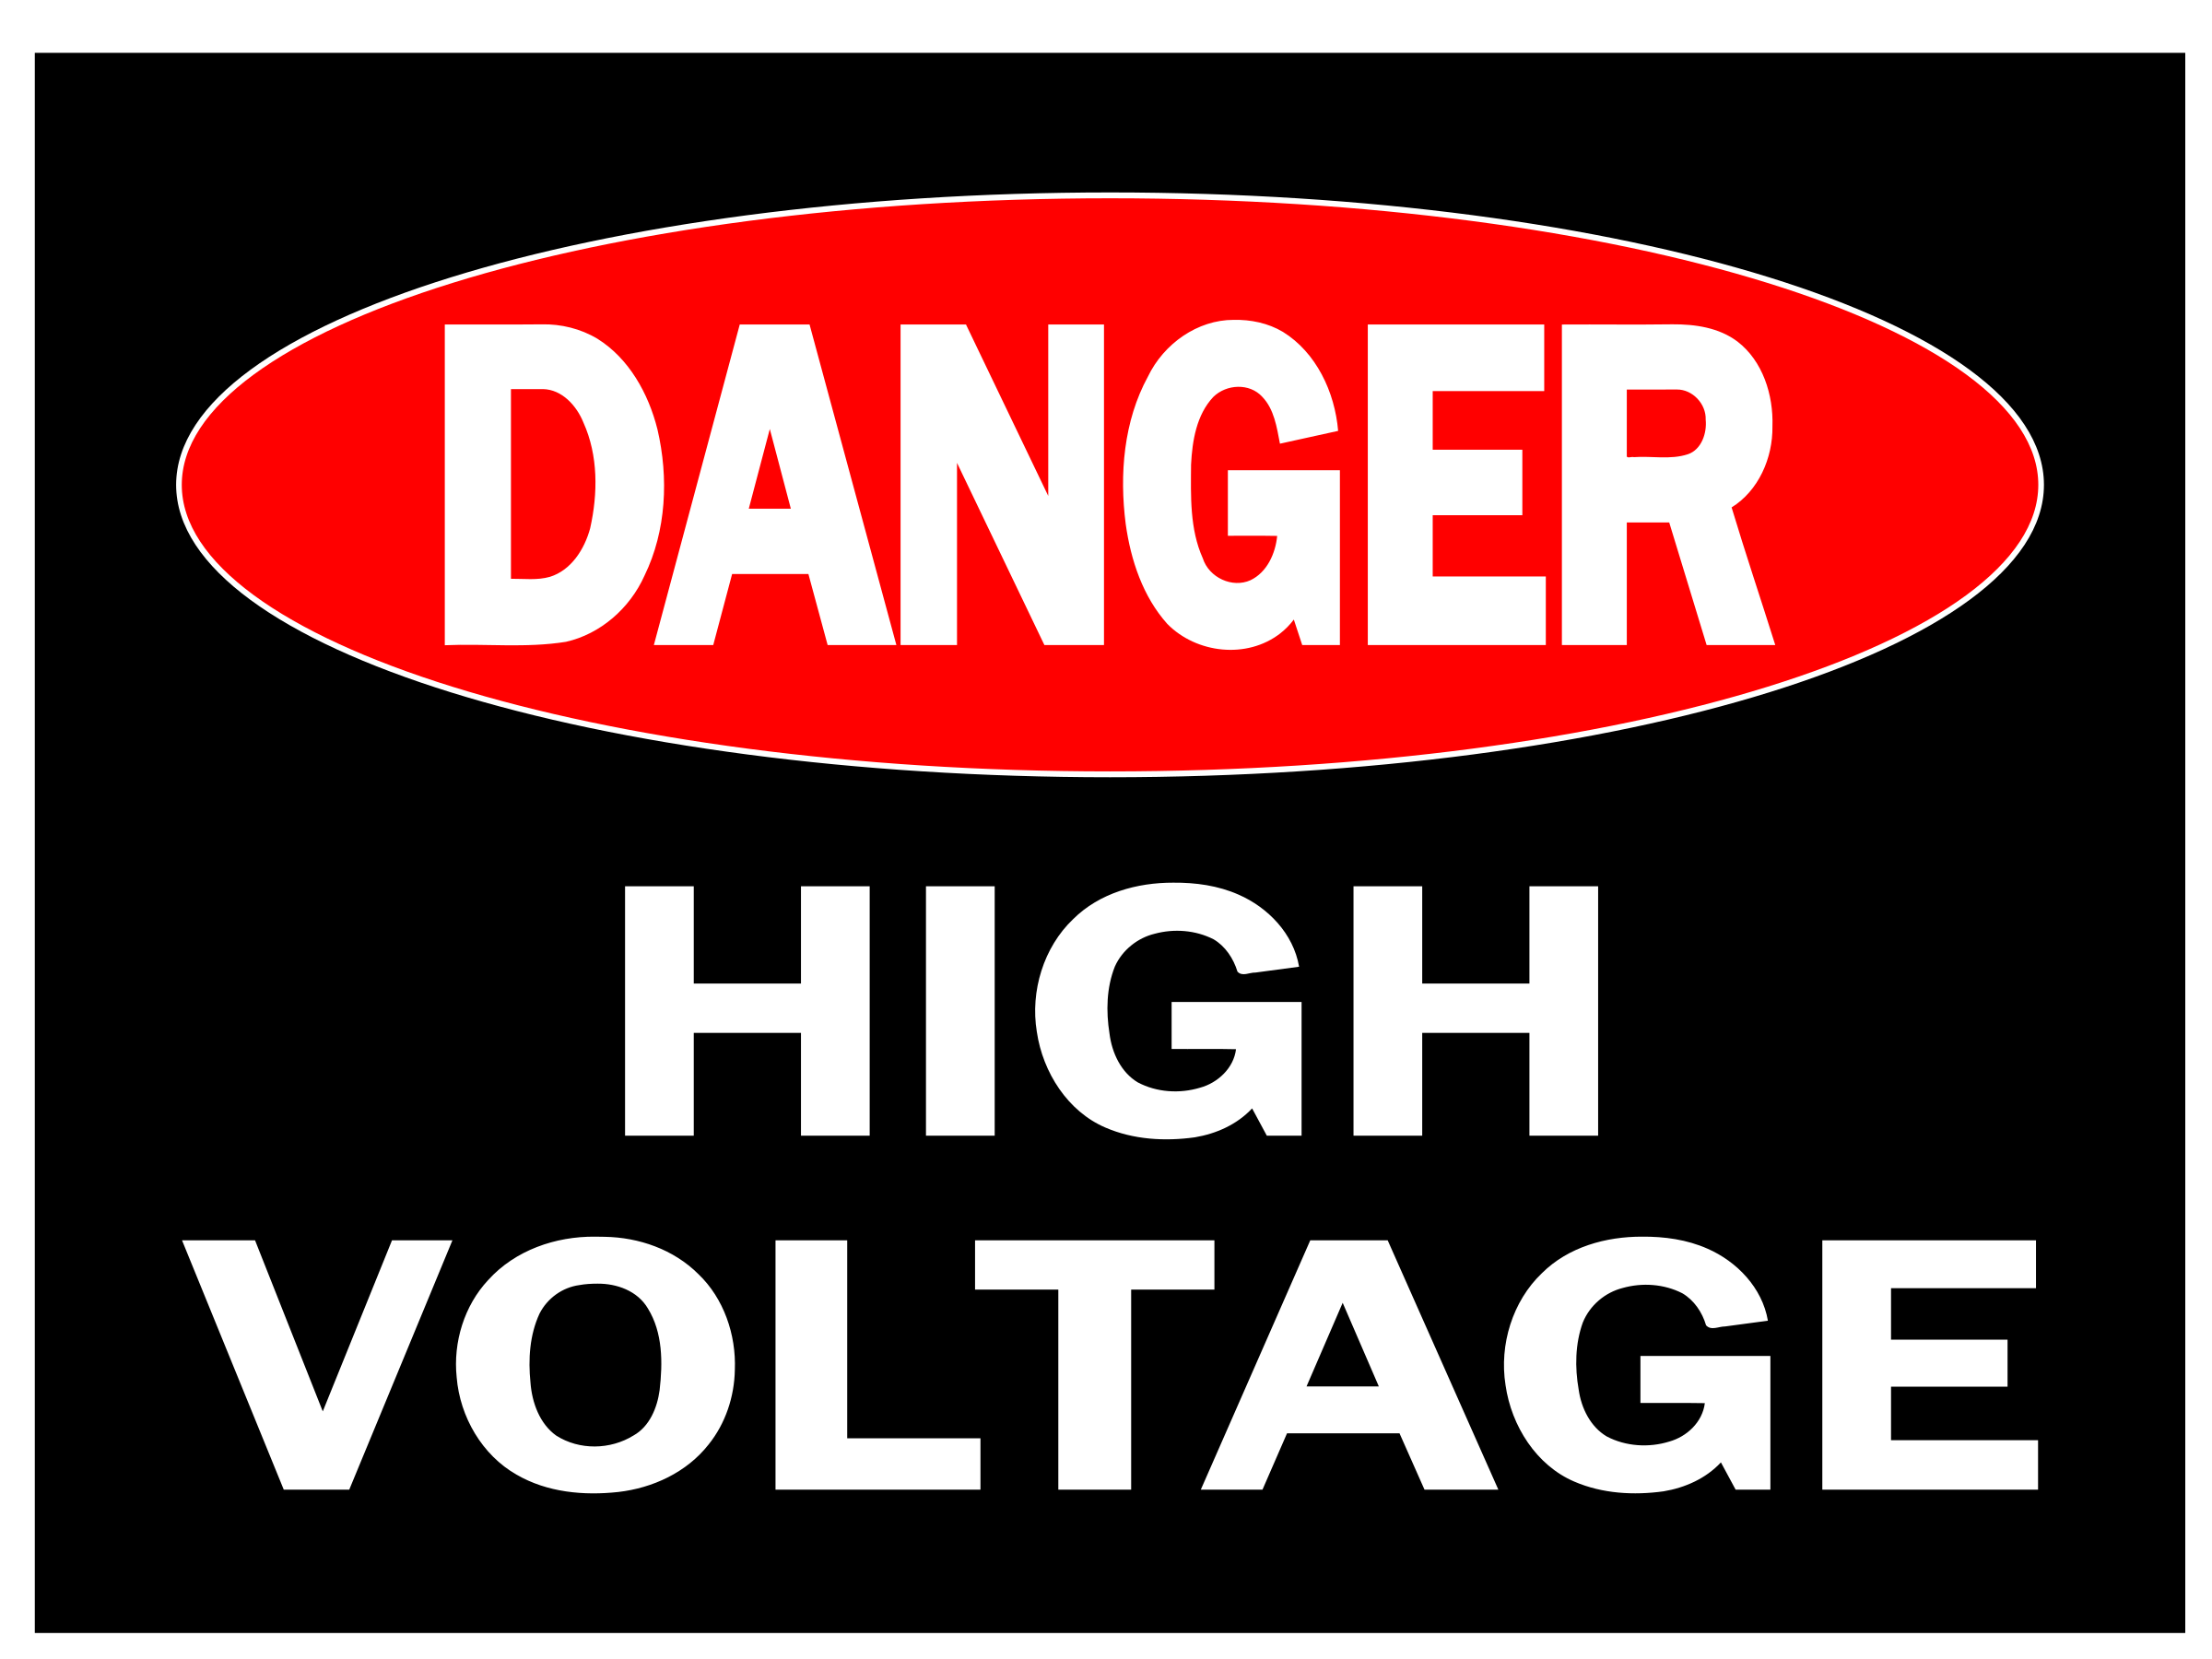 Danger - High Voltage by jhnri4